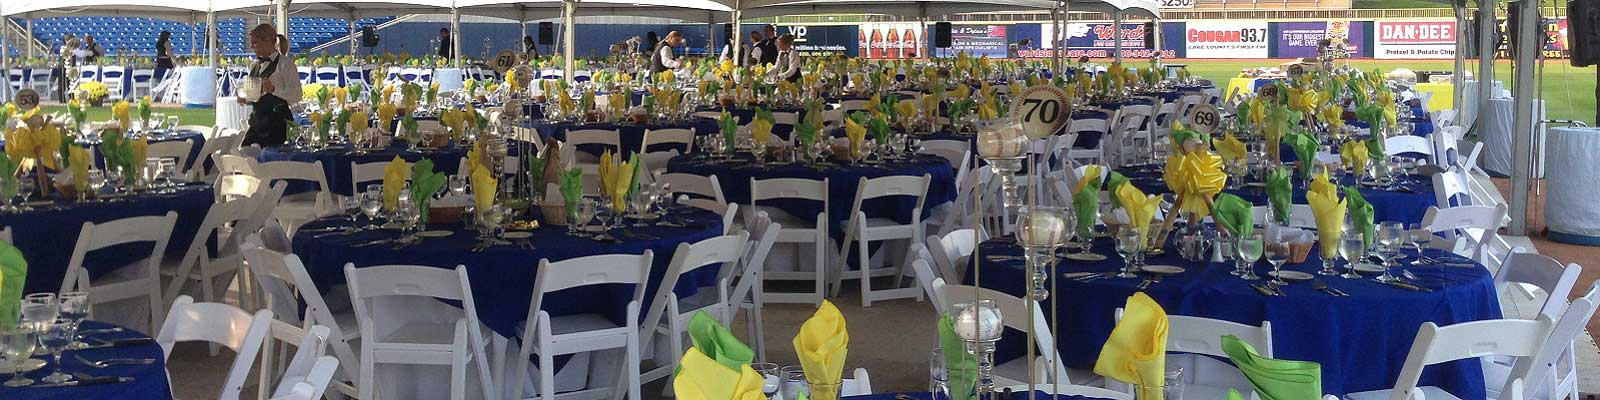 Event rentals in Northeast Ohio